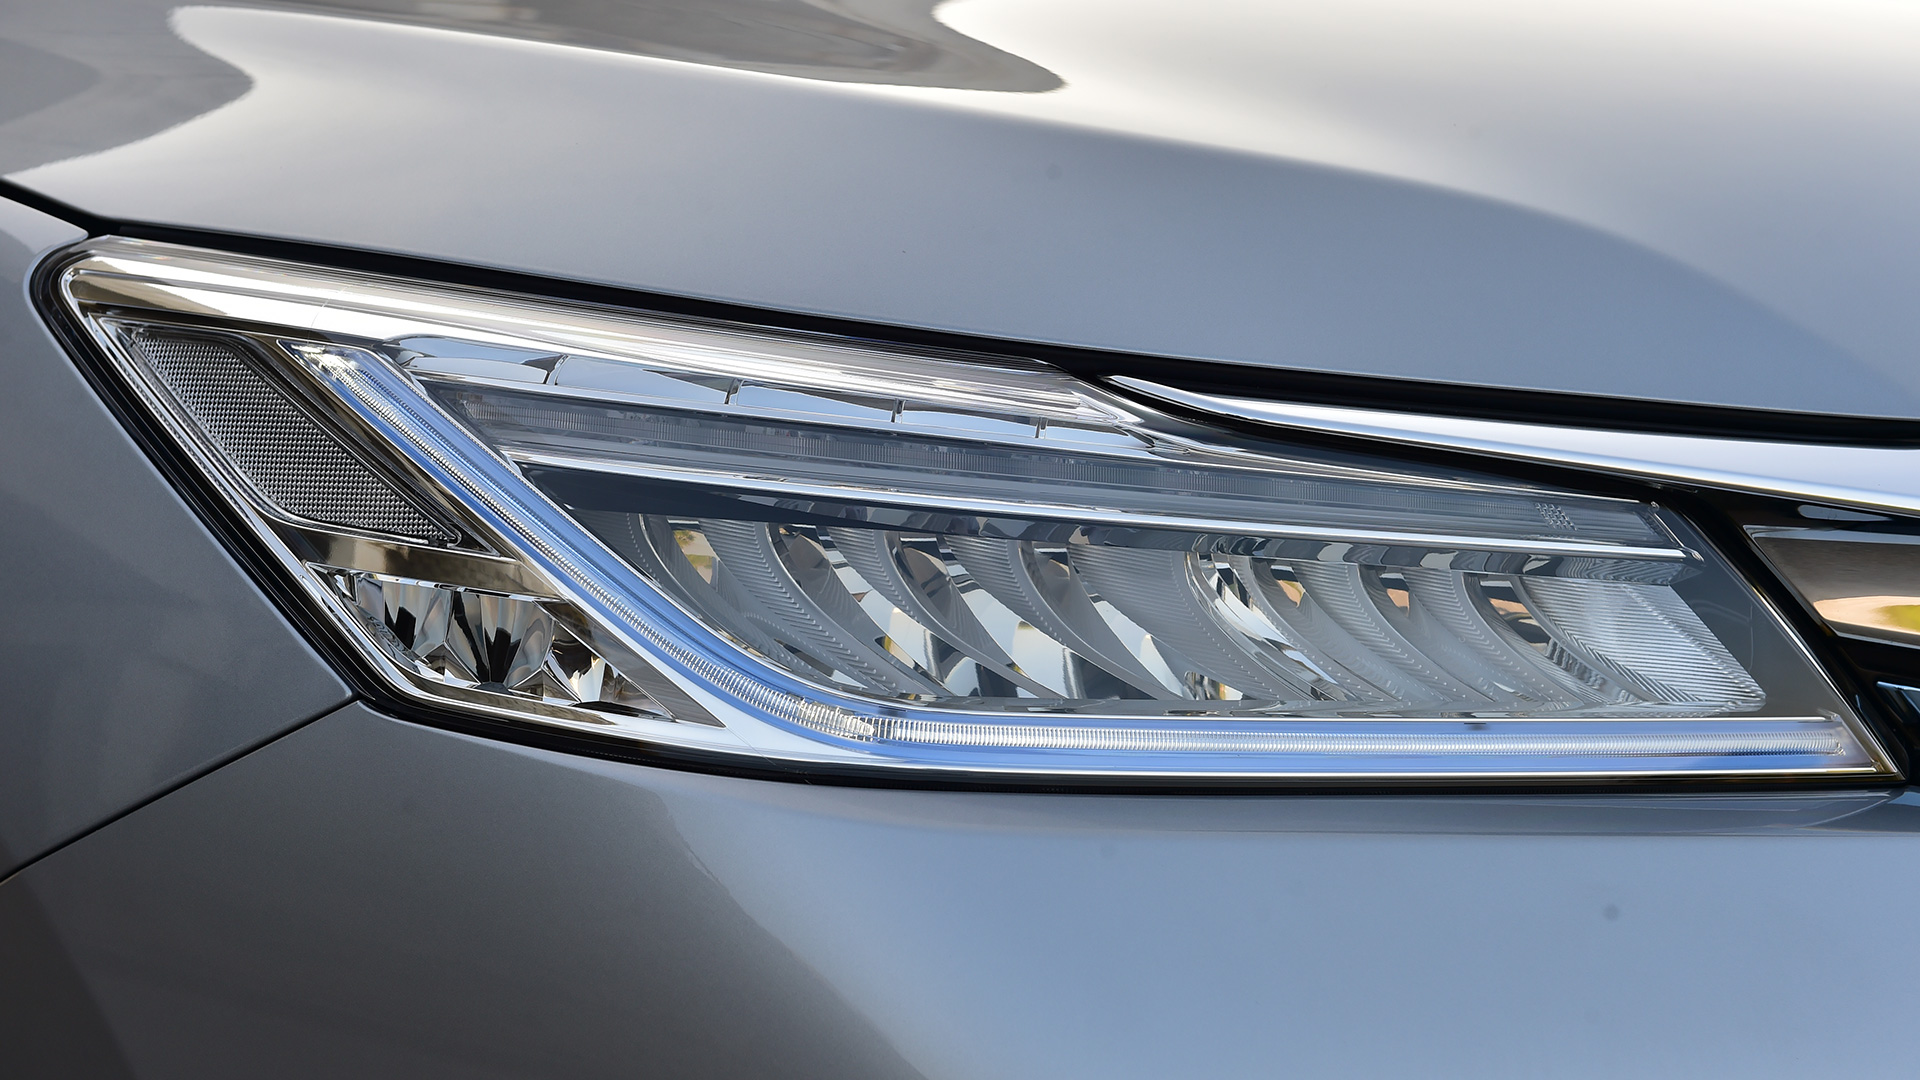 Honda Accord Hybrid 2016 STD Exterior